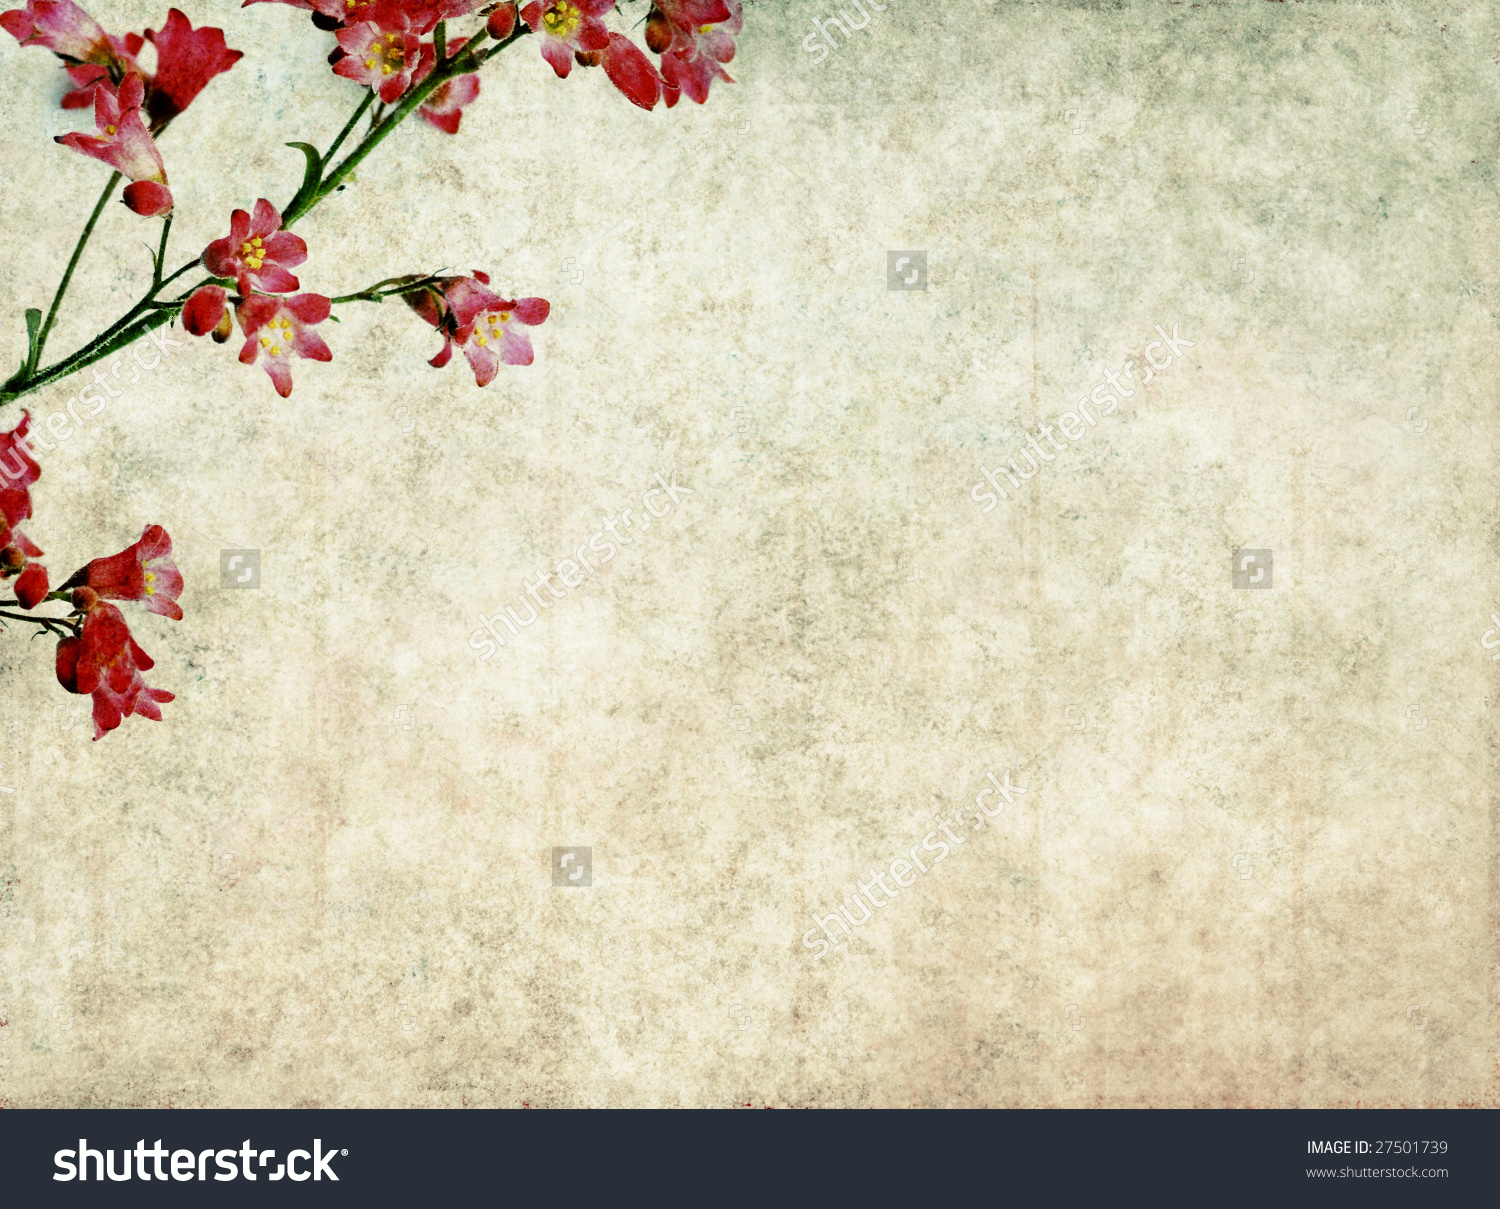 Free Download Lovely Background 1500x1209 Full Hd Wall 1500x1209